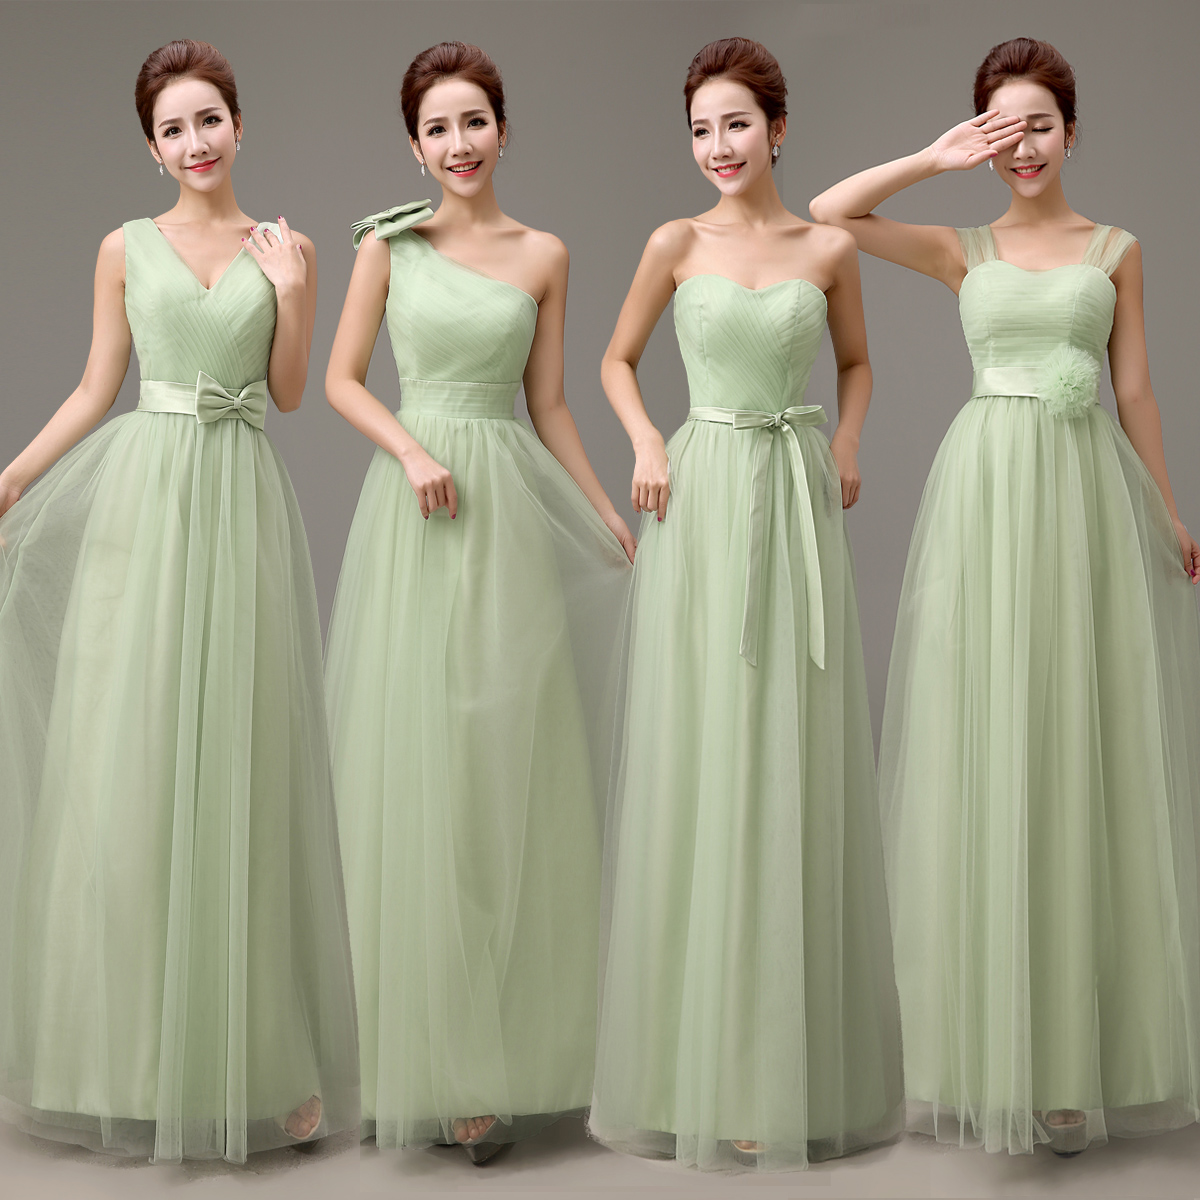 Online get cheap sage bridesmaids aliexpress alibaba group dusty green bridesmaid dress tulle sage bridesmaid dress sweetheart pleated prom dresses 2015 modest bridesmaid dress ombrellifo Gallery